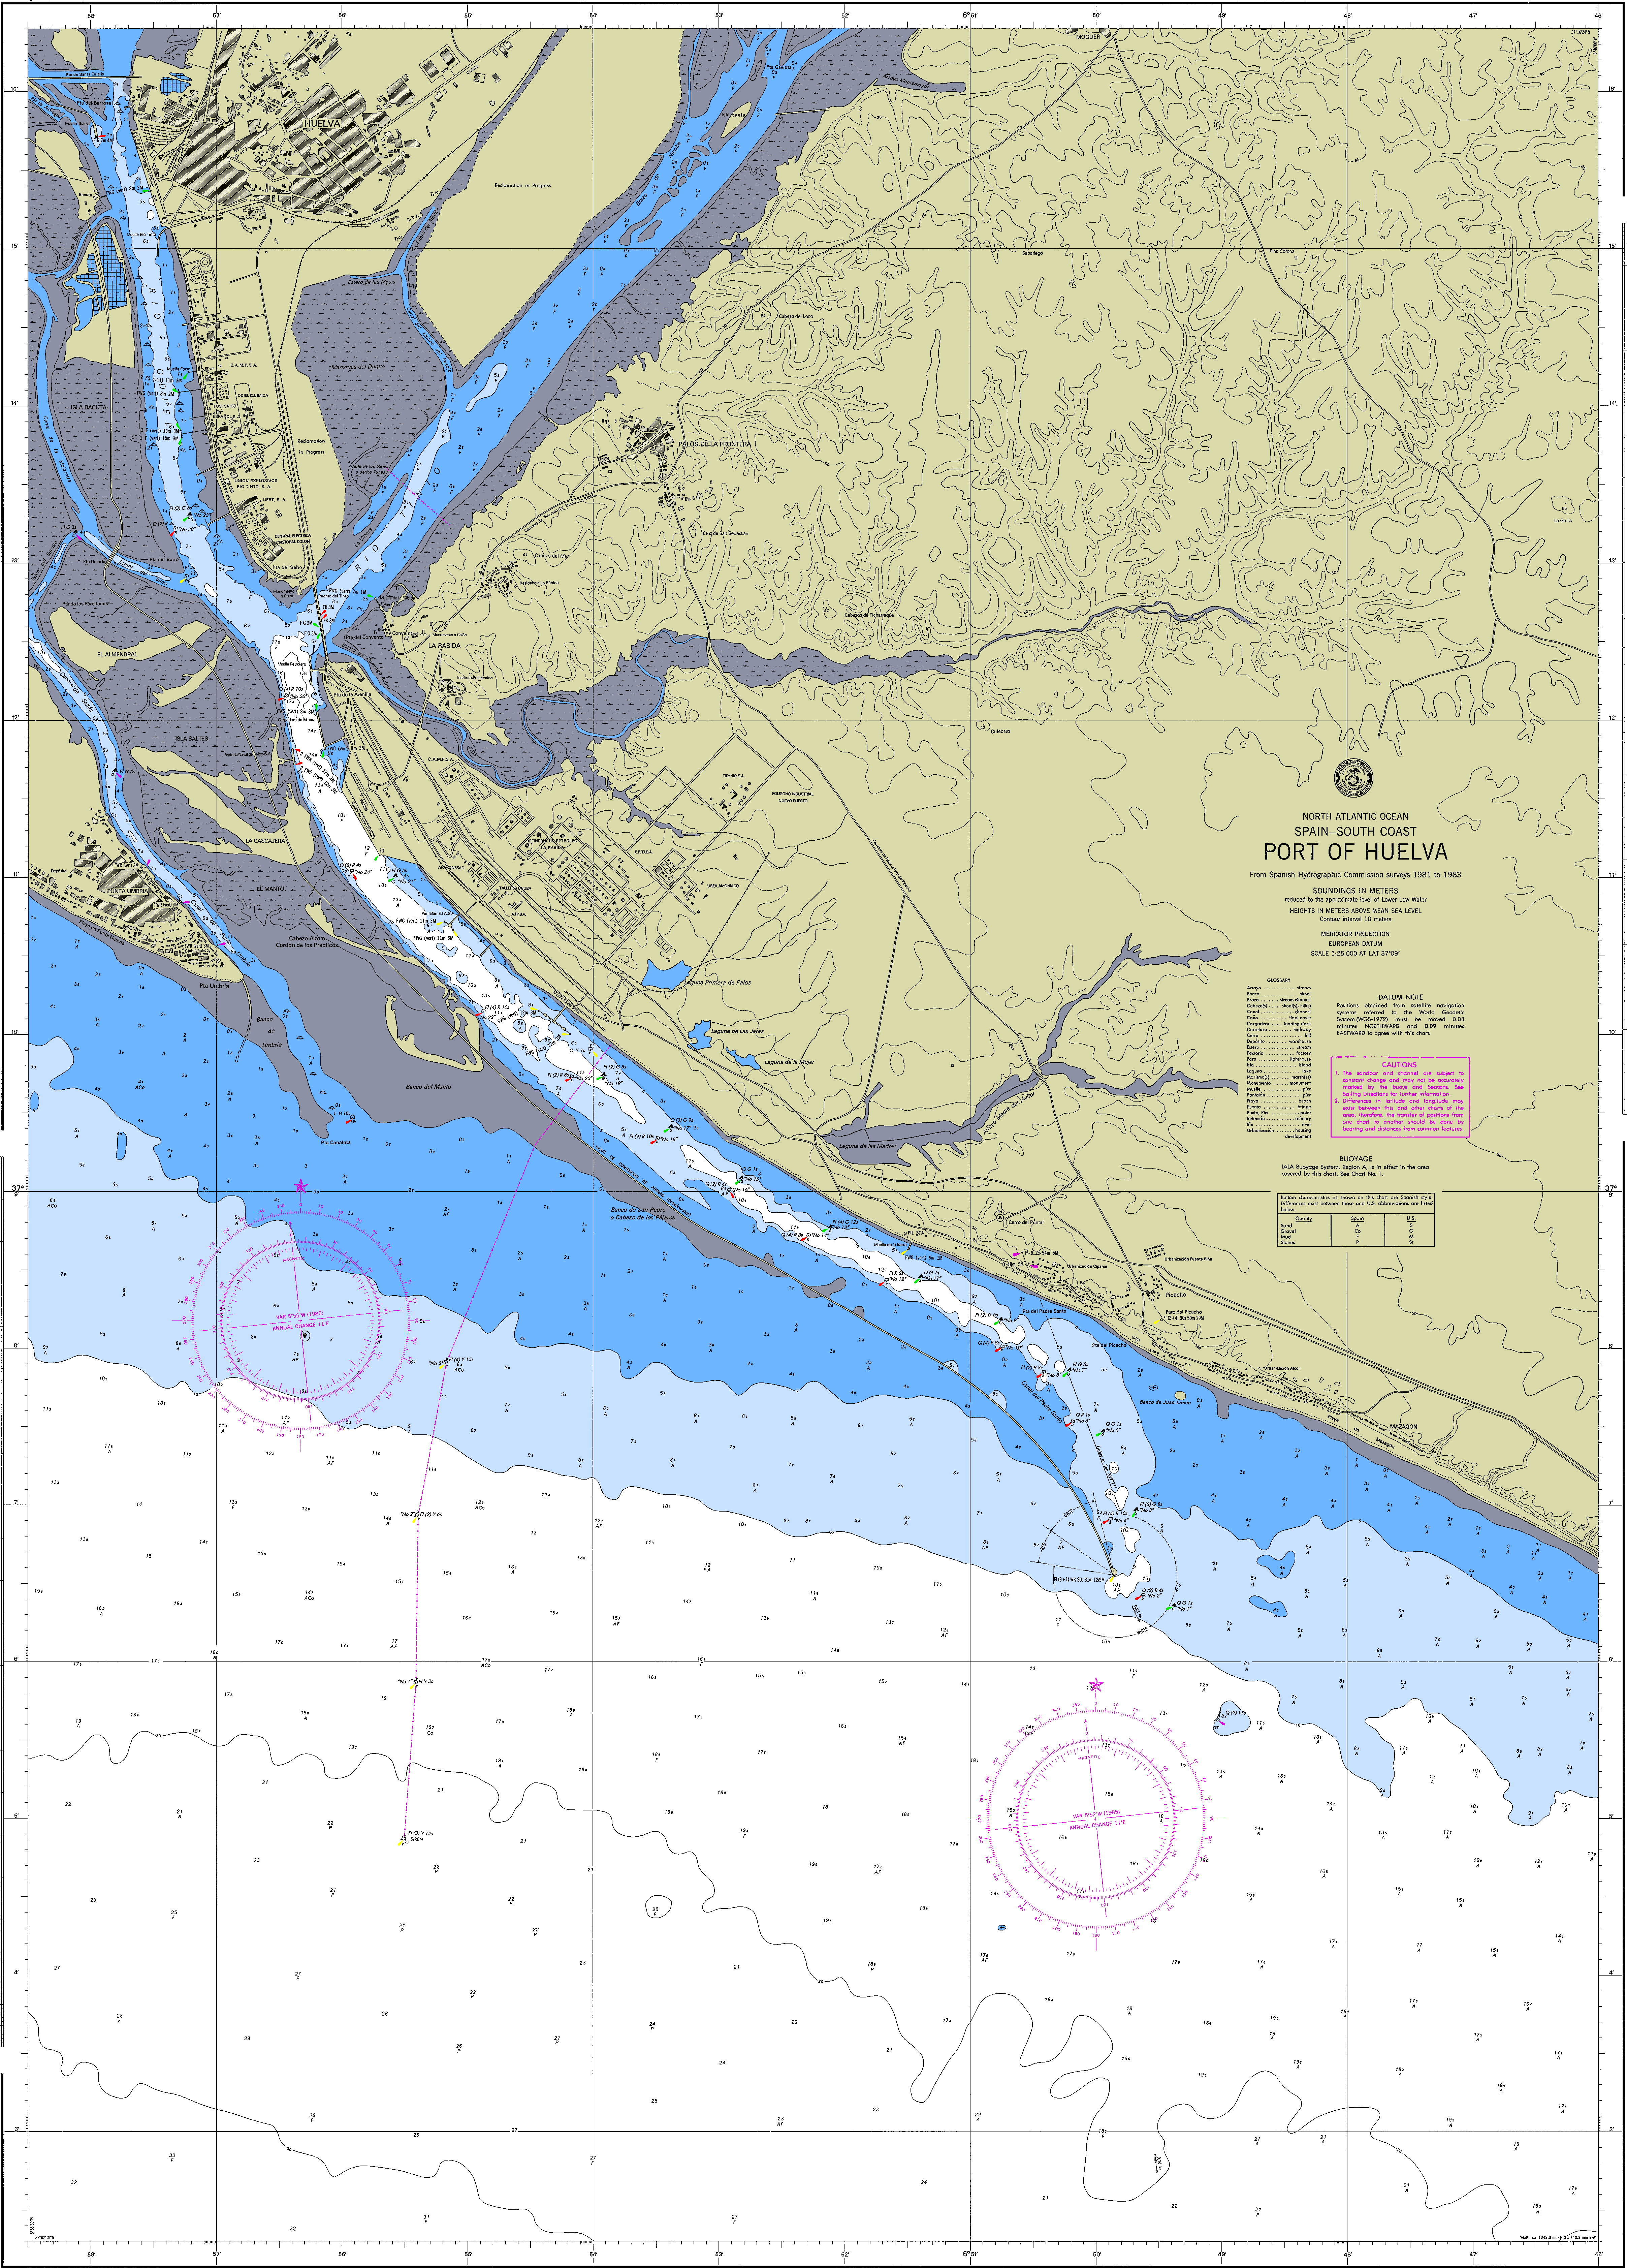 Nautical chart of the port of Huelva